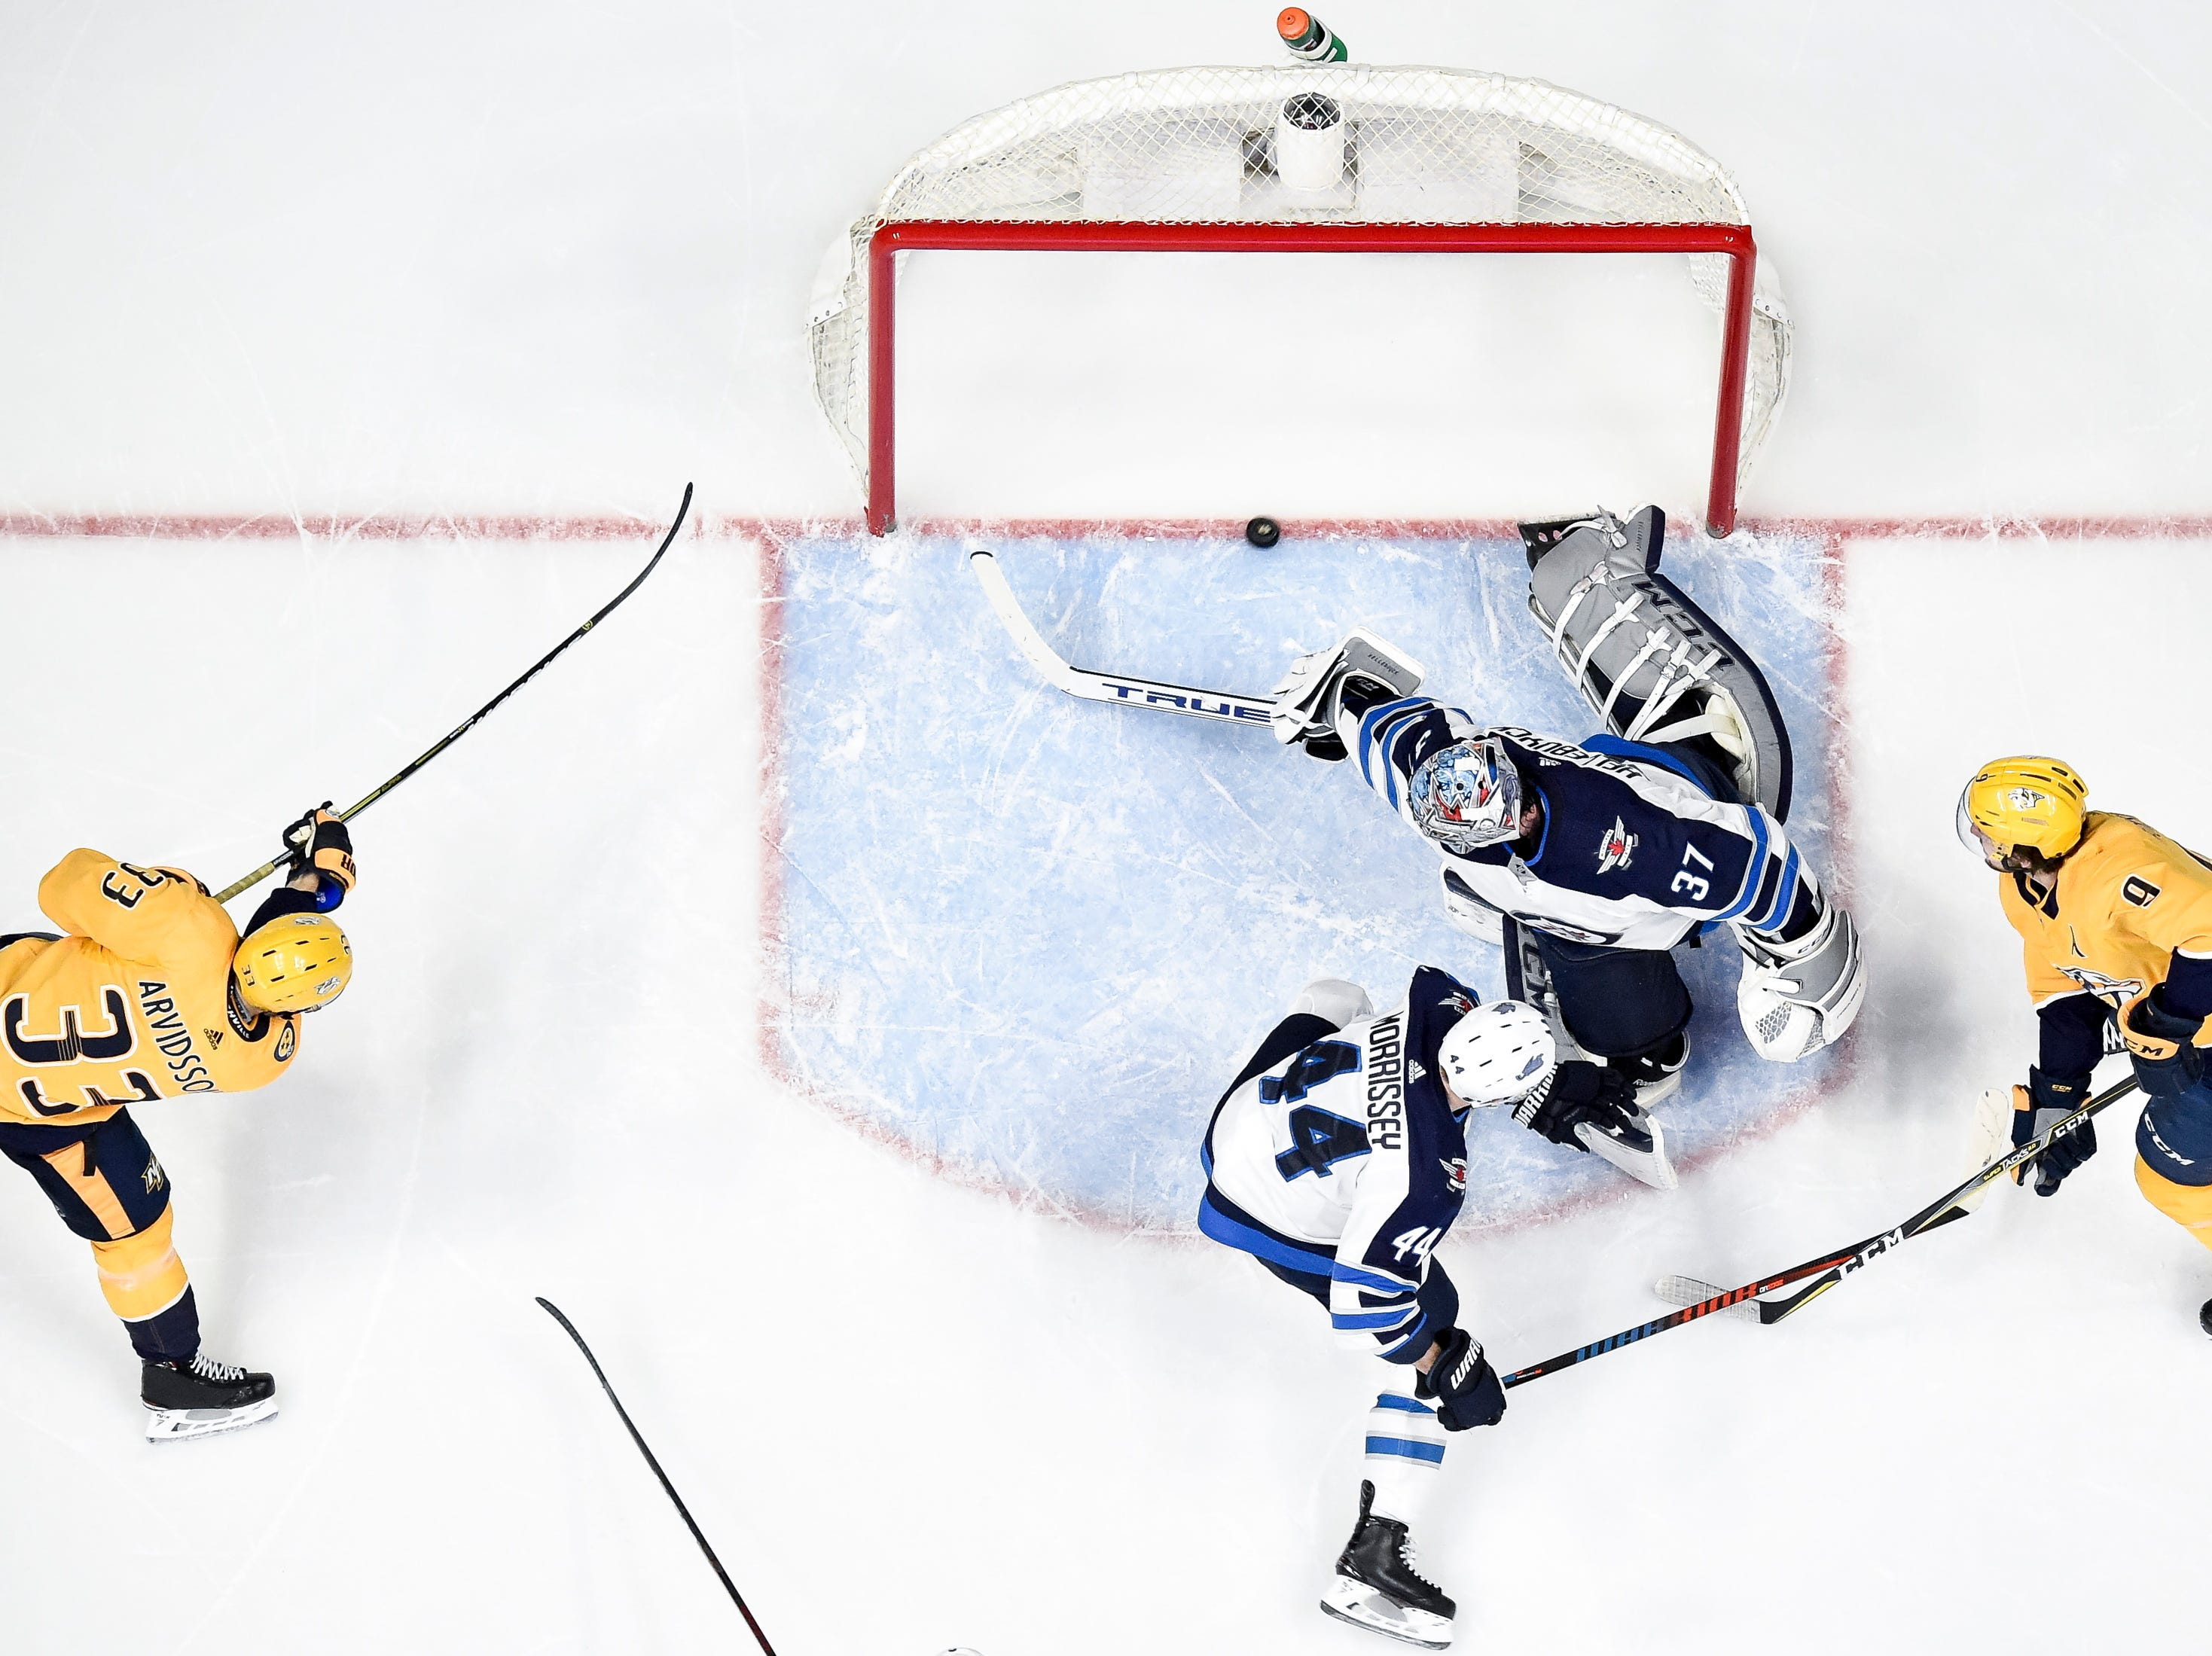 Nashville Predators right wing Viktor Arvidsson (33) scores past Winnipeg Jets goaltender Connor Hellebuyck (37) during the second period at Bridgestone Arena in Nashville, Tenn., Thursday, Jan. 17, 2019.